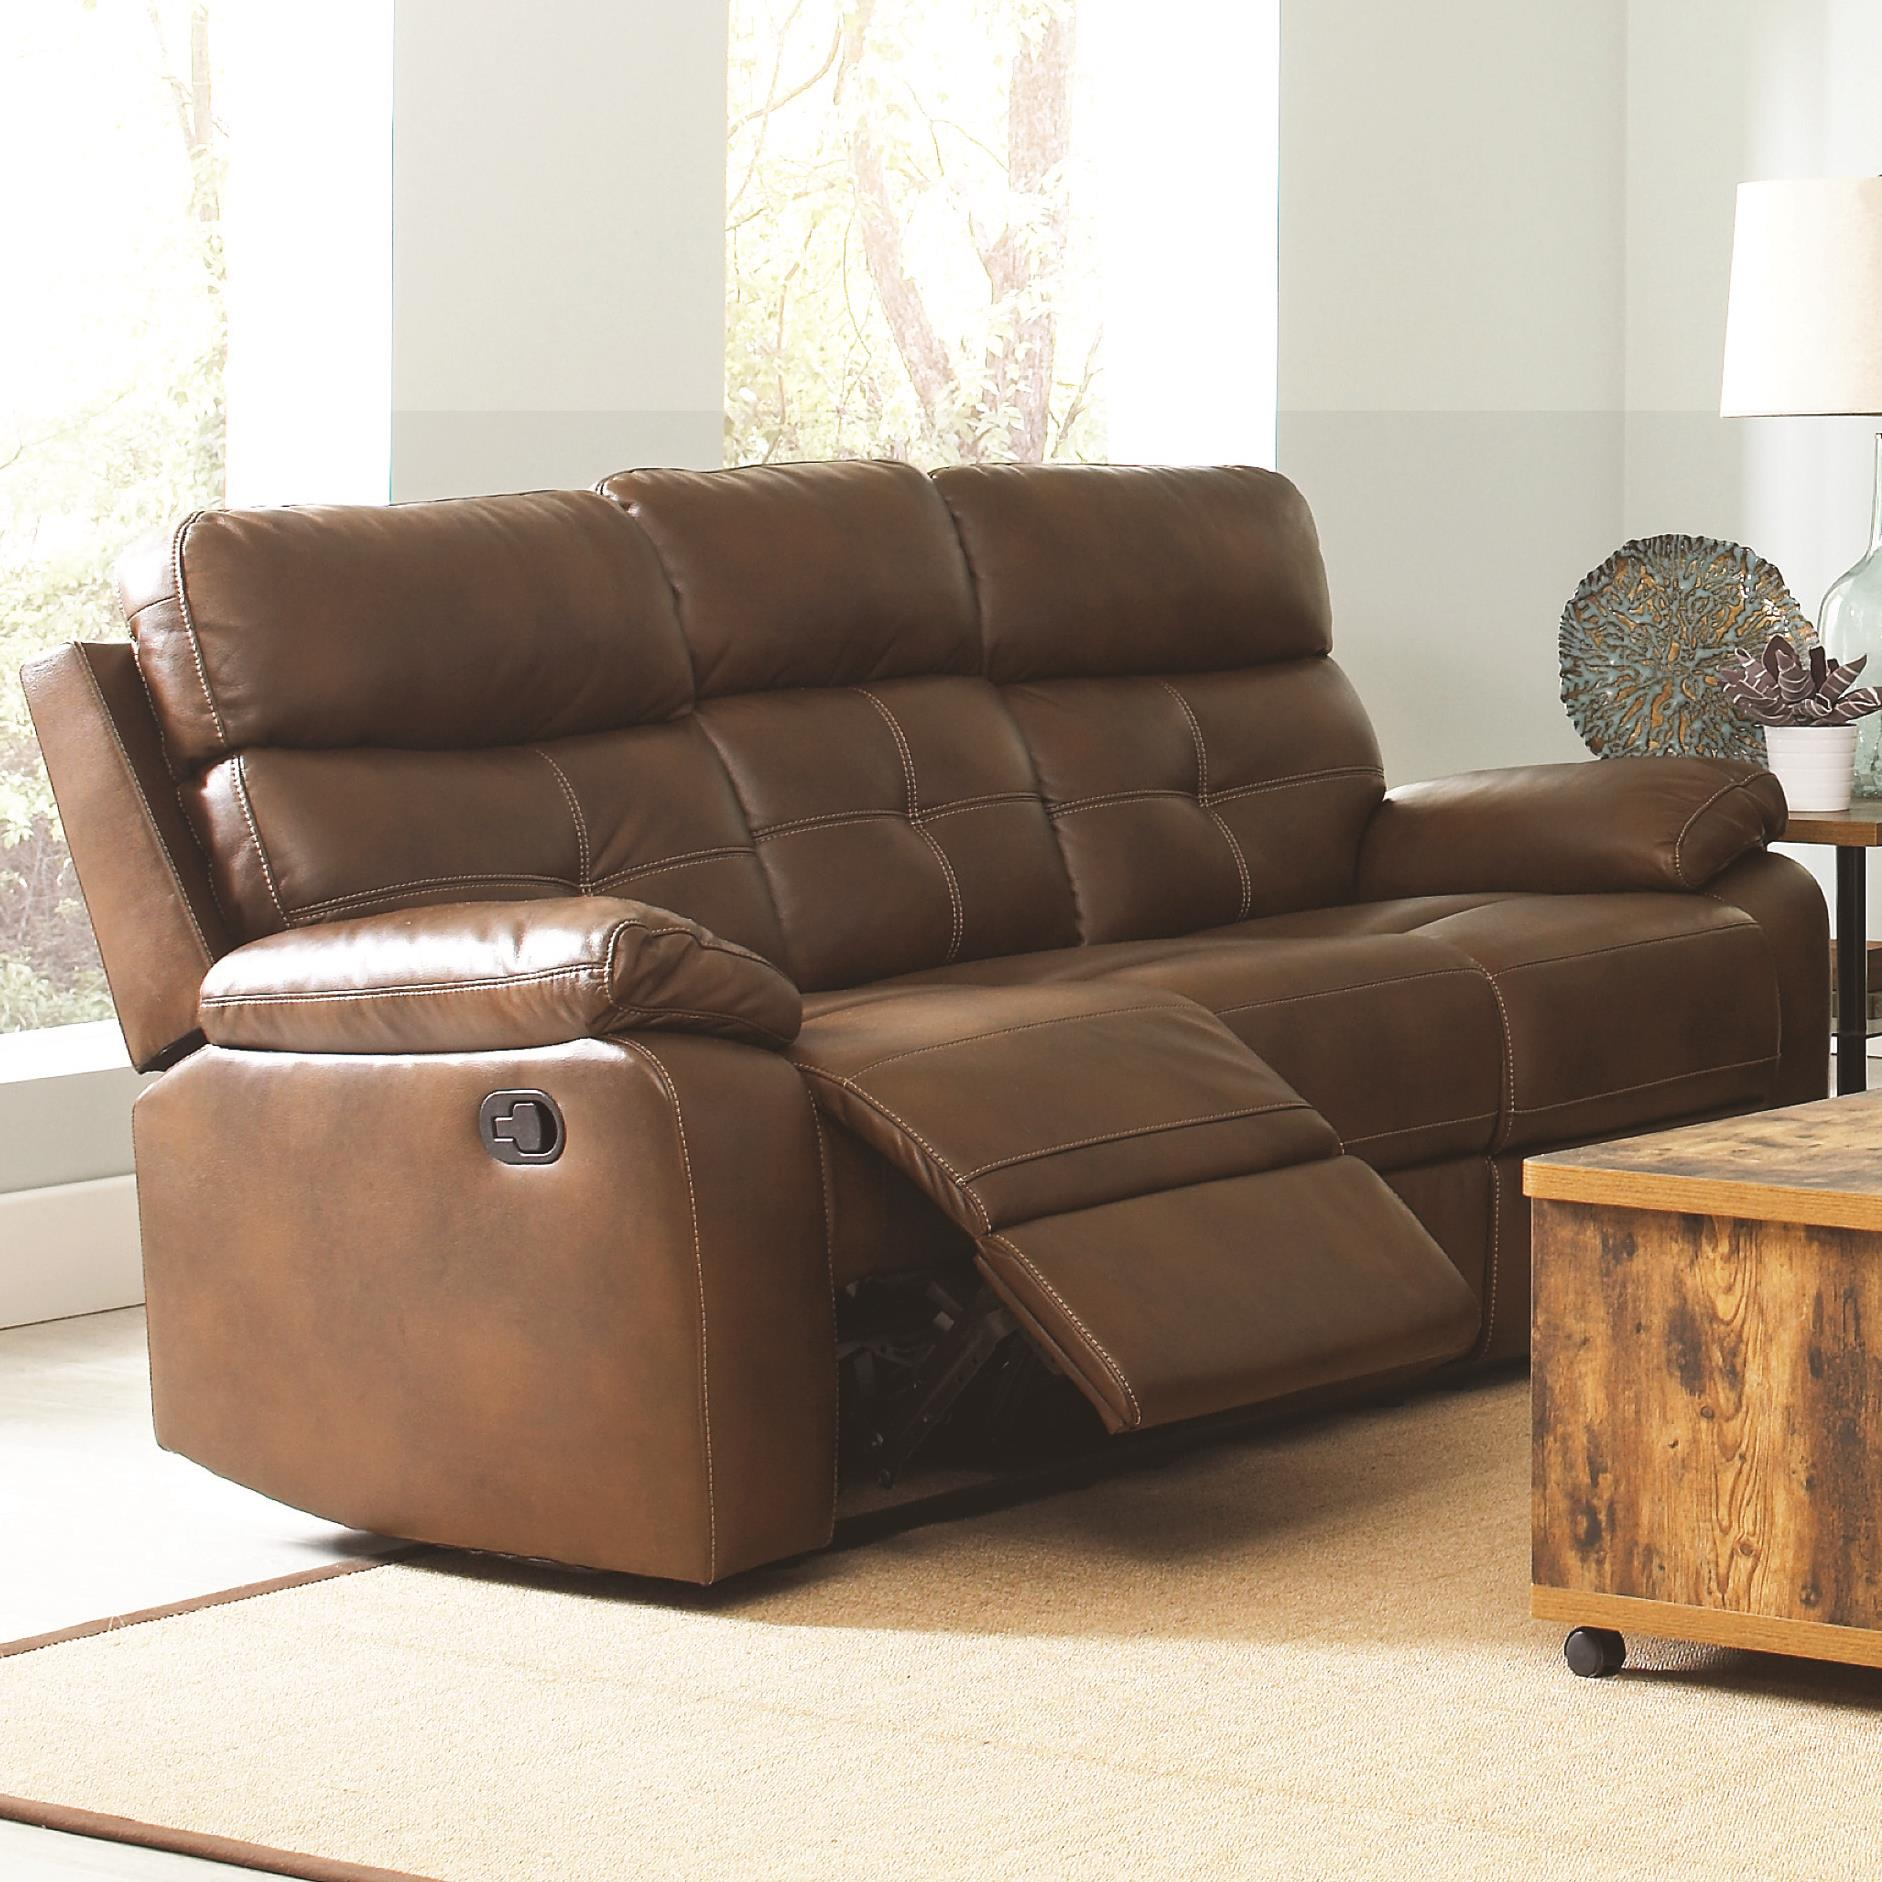 Coaster Damiano Reclining Sofa - Item Number: 601691